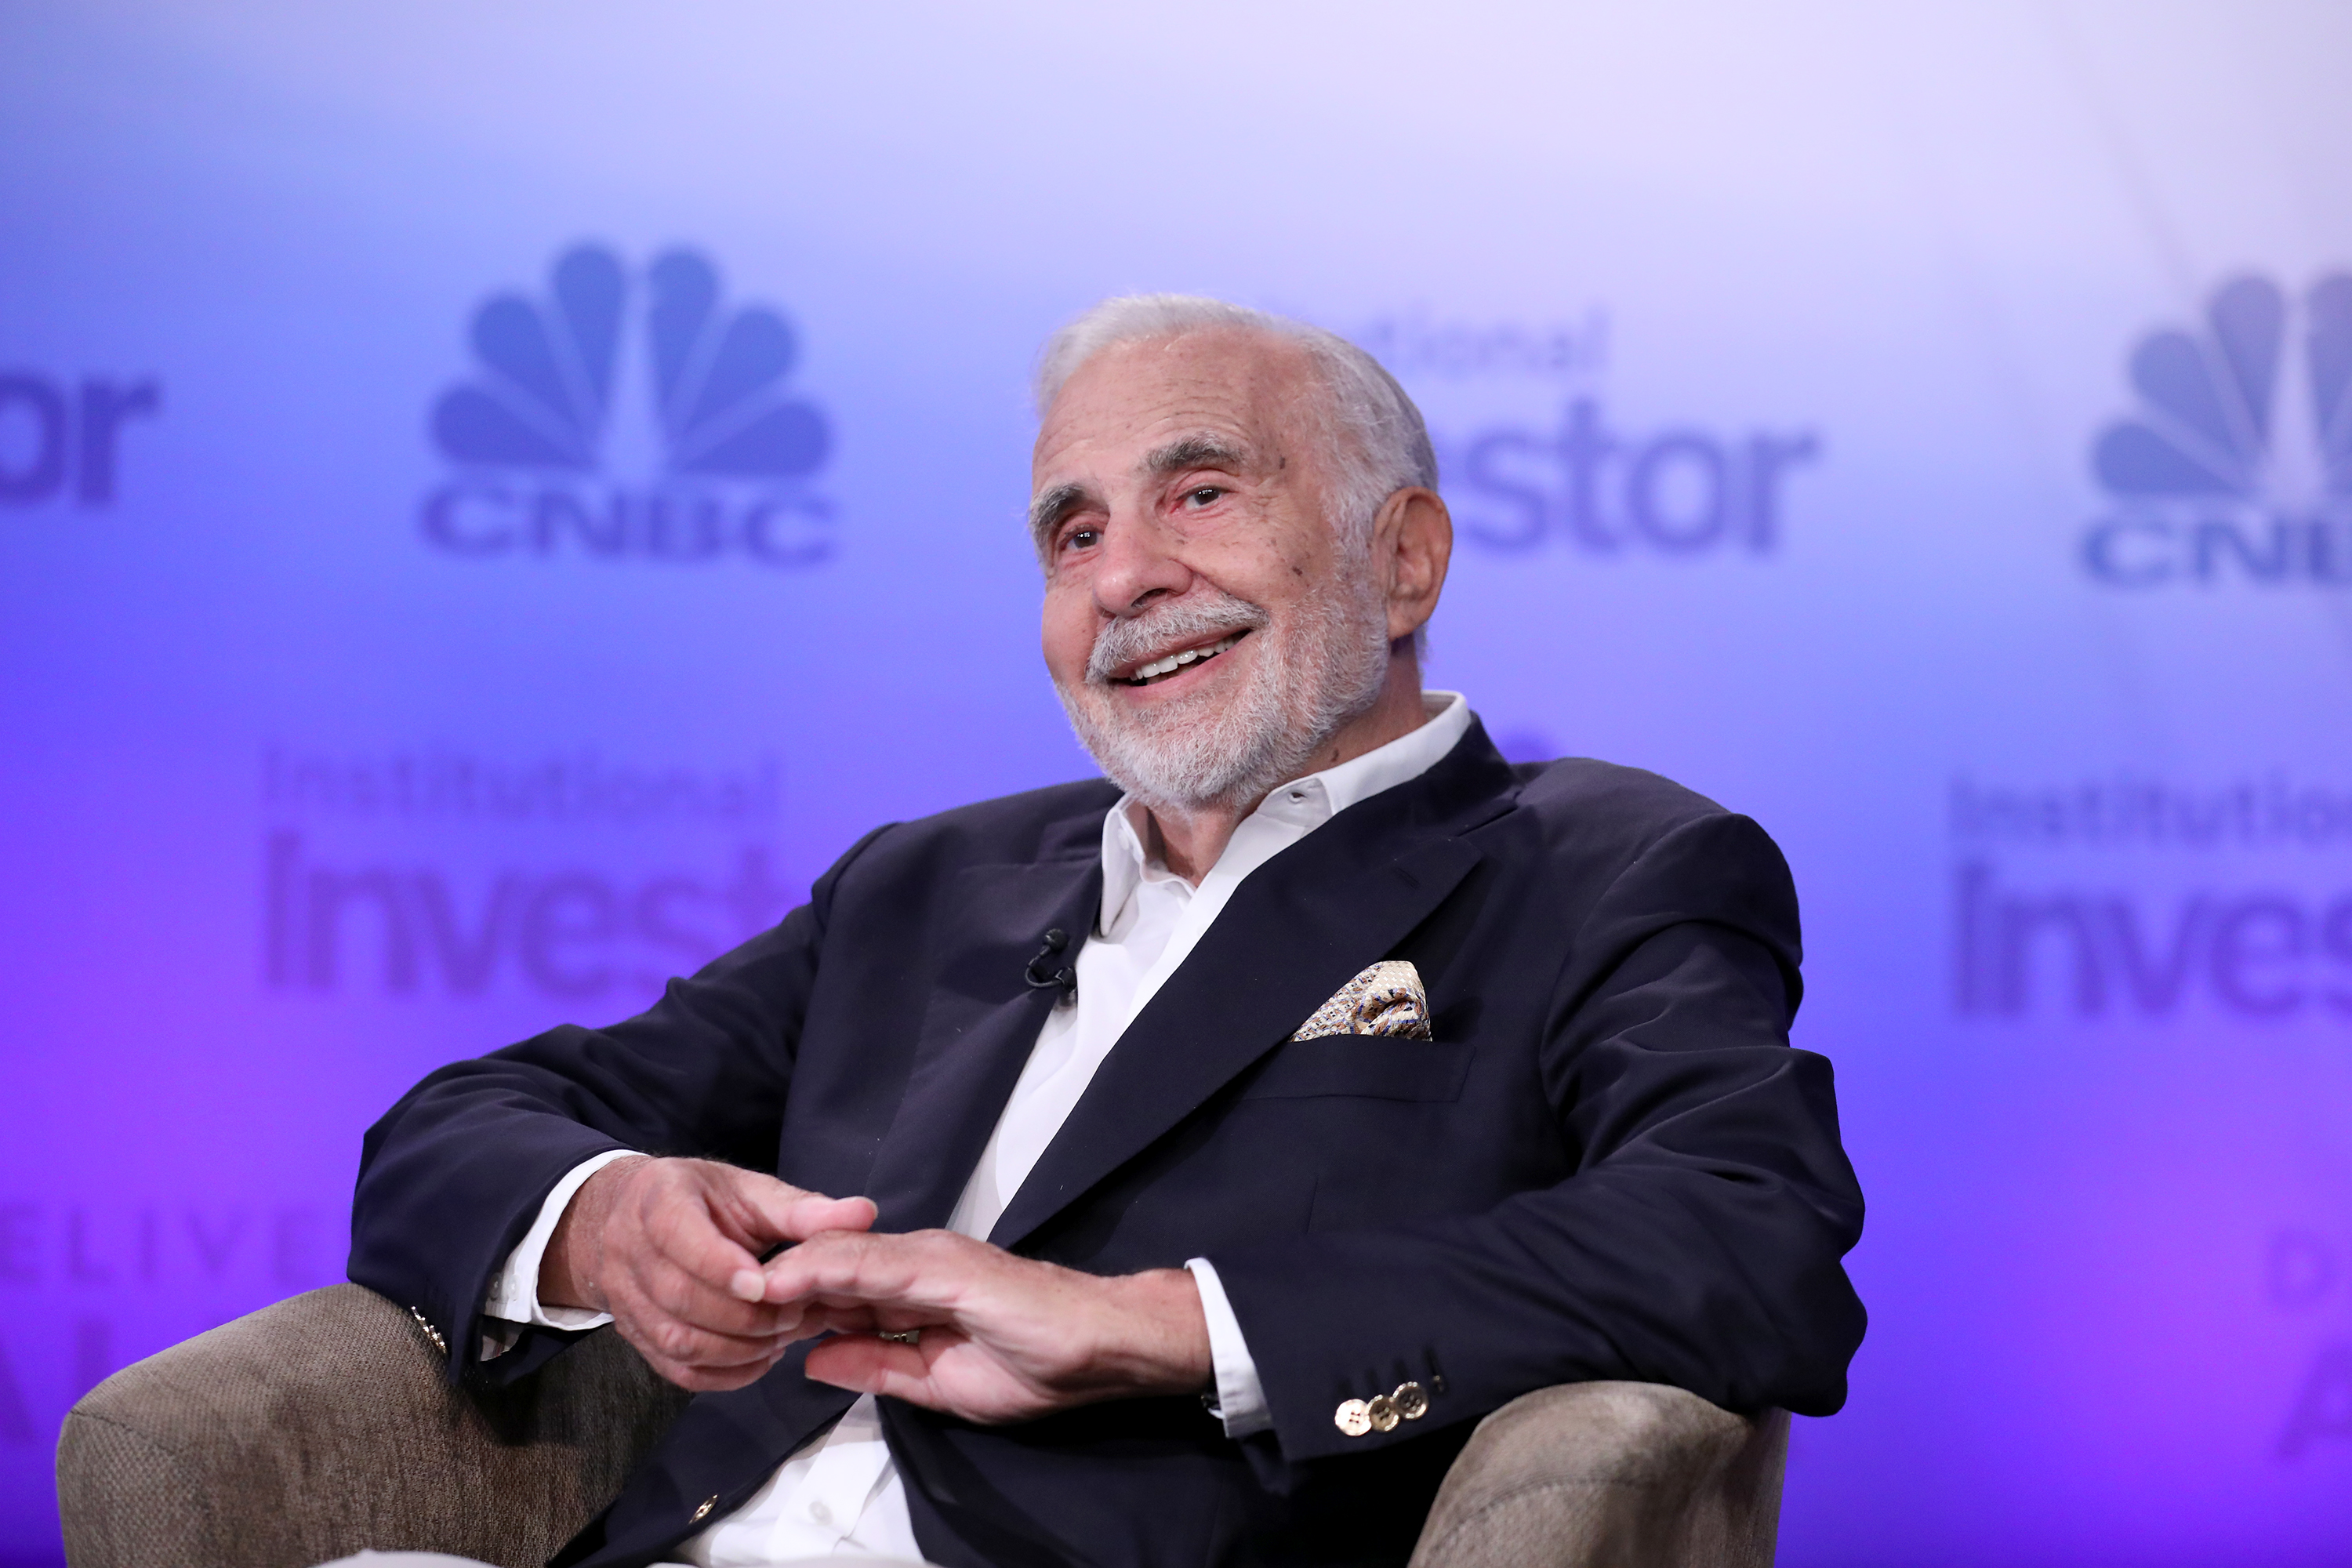 Carl Icahn, Icahn Enterprises Chairman during his keynote at the 6th annual CNBC Institutional Investor Delivering Alpha Conference on Tuesday, September 13, 2016 at the Pierre Hotel in New York.